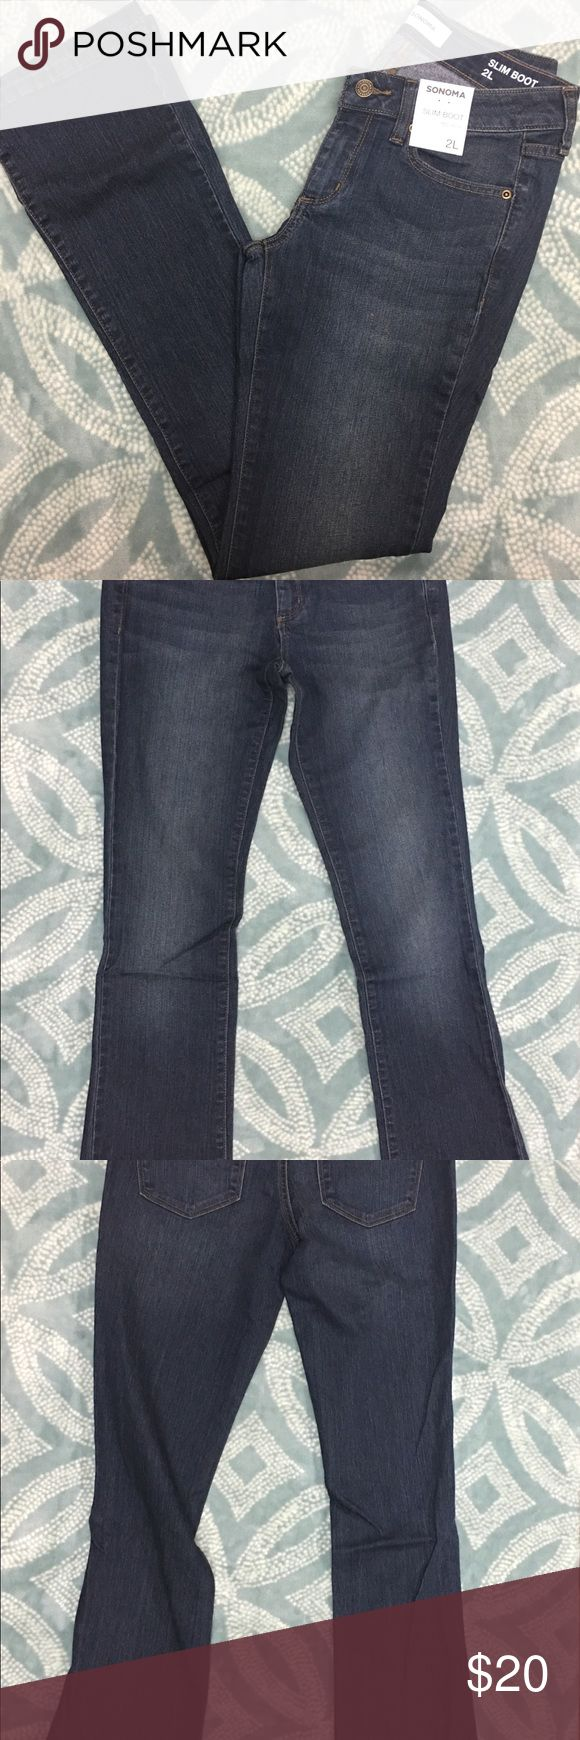 Sonoma women's slim bootcut mid rise jeans sz 2L Faded & whiskered details 5-pocket Stretchy denim construction FIT & SIZING Short: 30-in. inseam Average: 32-in. inseam Long: 34-in. inseam Midrise sits above the hip Bootcut Zipper fly FABRIC & CARE Cotton, polyester, spandex Sonoma Jeans Boot Cut